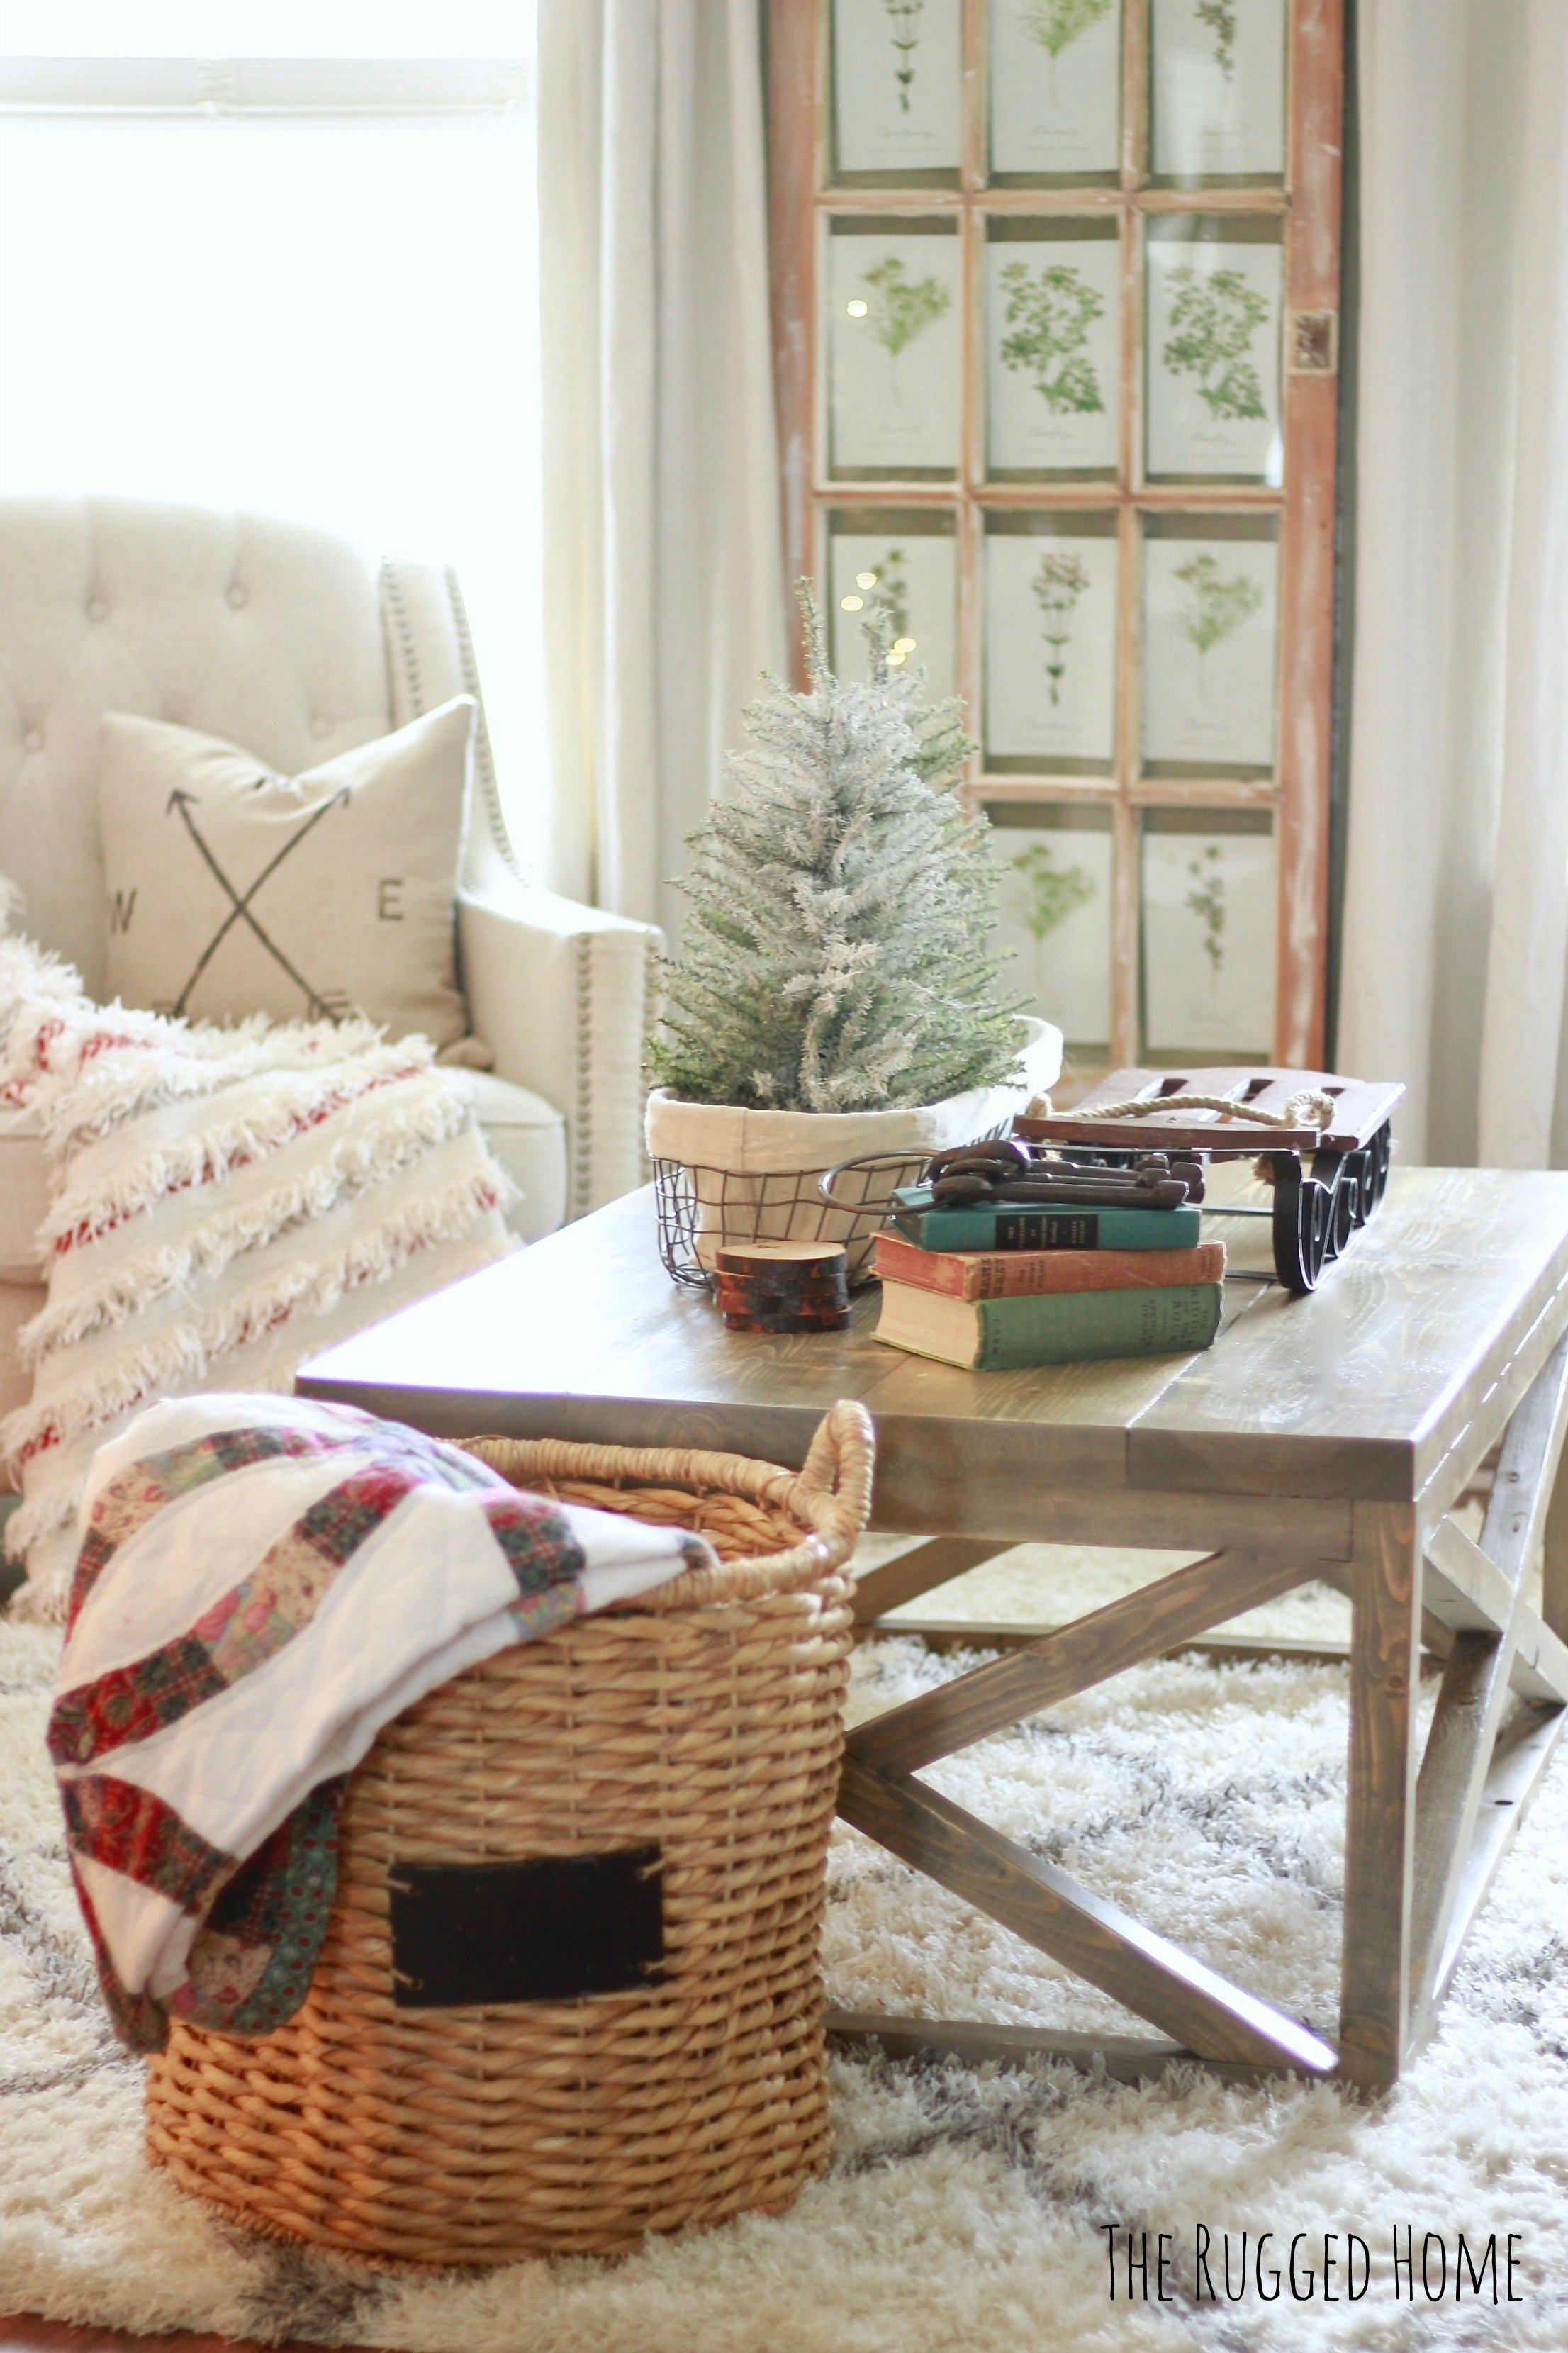 Our White Farmhouse Christmas Living Room, This year we decorated our home in whites, and splashes of red here and there...www.whitepicketfarmhouse.com